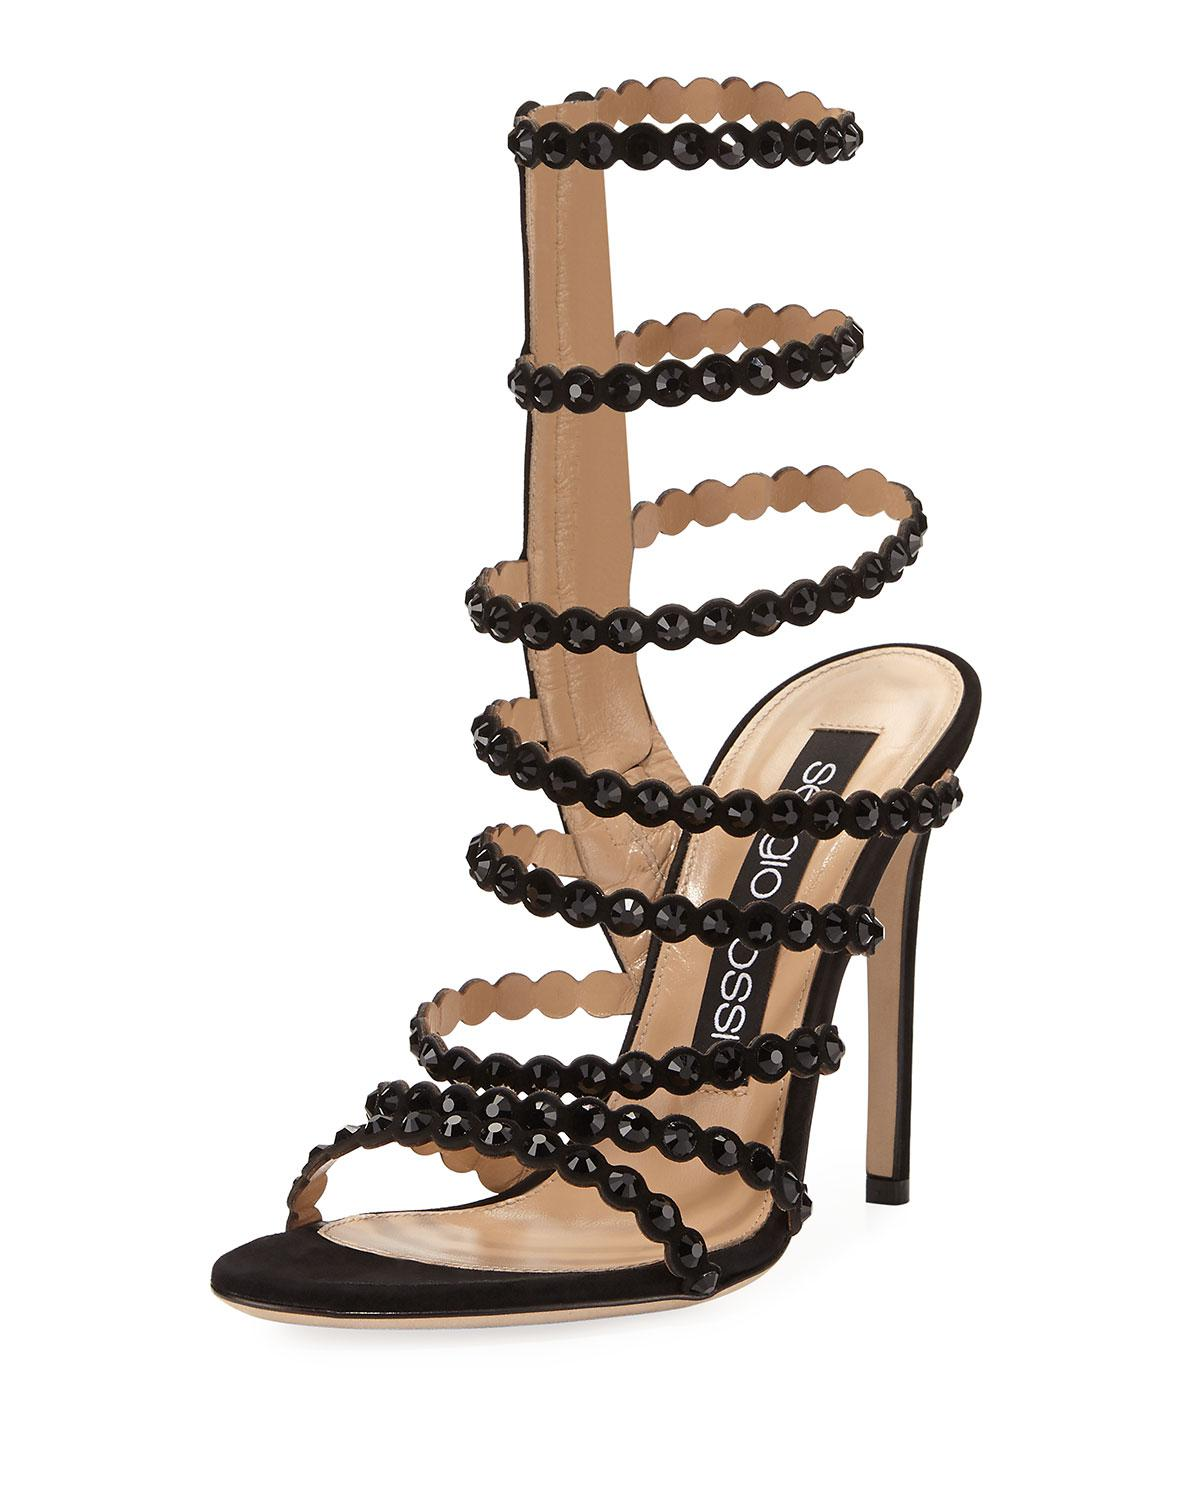 Black suede sandals with studs Sergio Rossi fuzoqSB